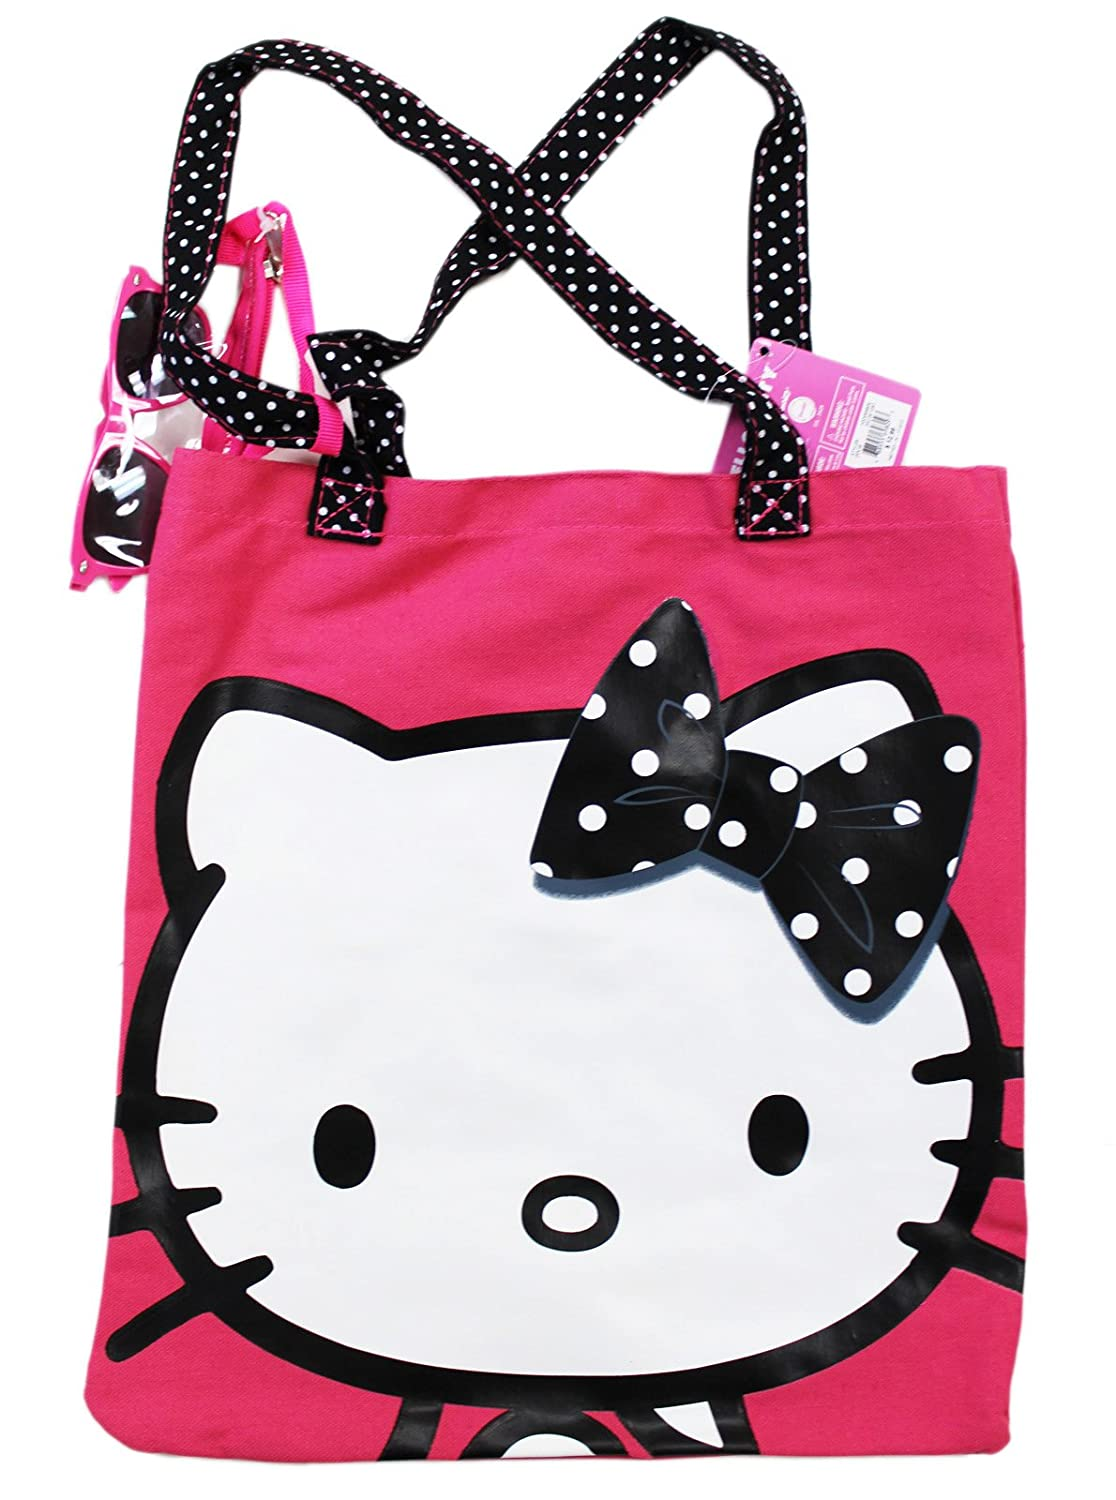 4dc90acca Amazon.com: Hello Kitty w/Black Polka Dotted Bow Pink Colored Tote Bag:  Clothing